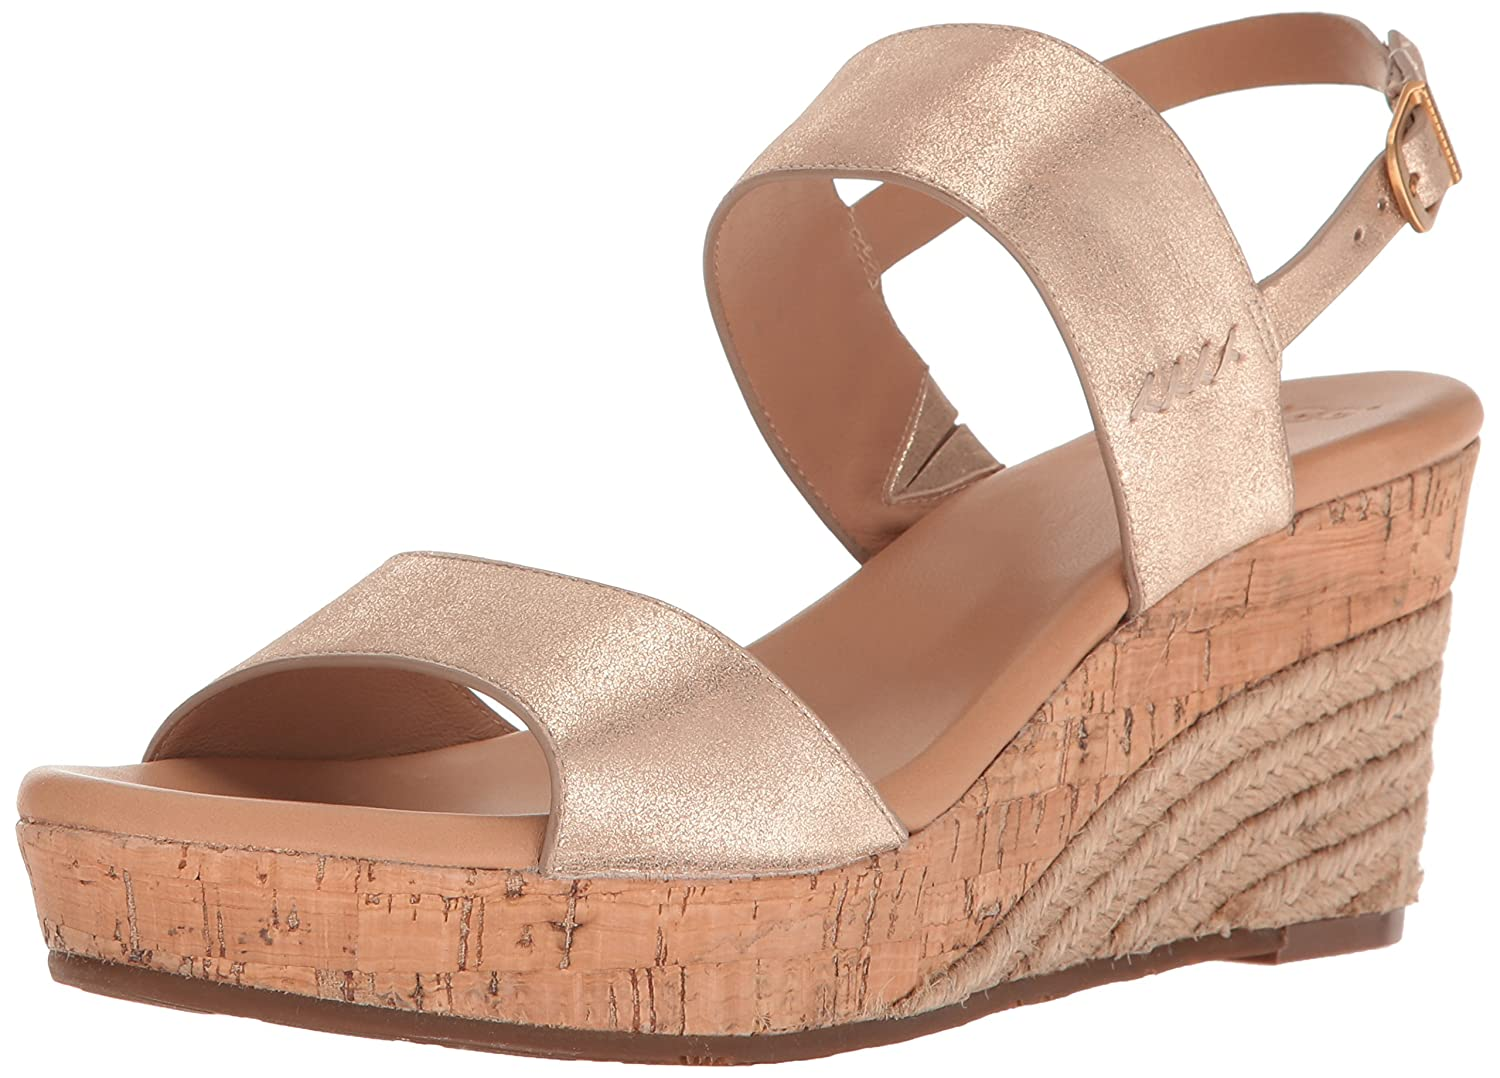 f1e1ca3d1b5 UGG Women's Elena Metallic Wedge Sandal